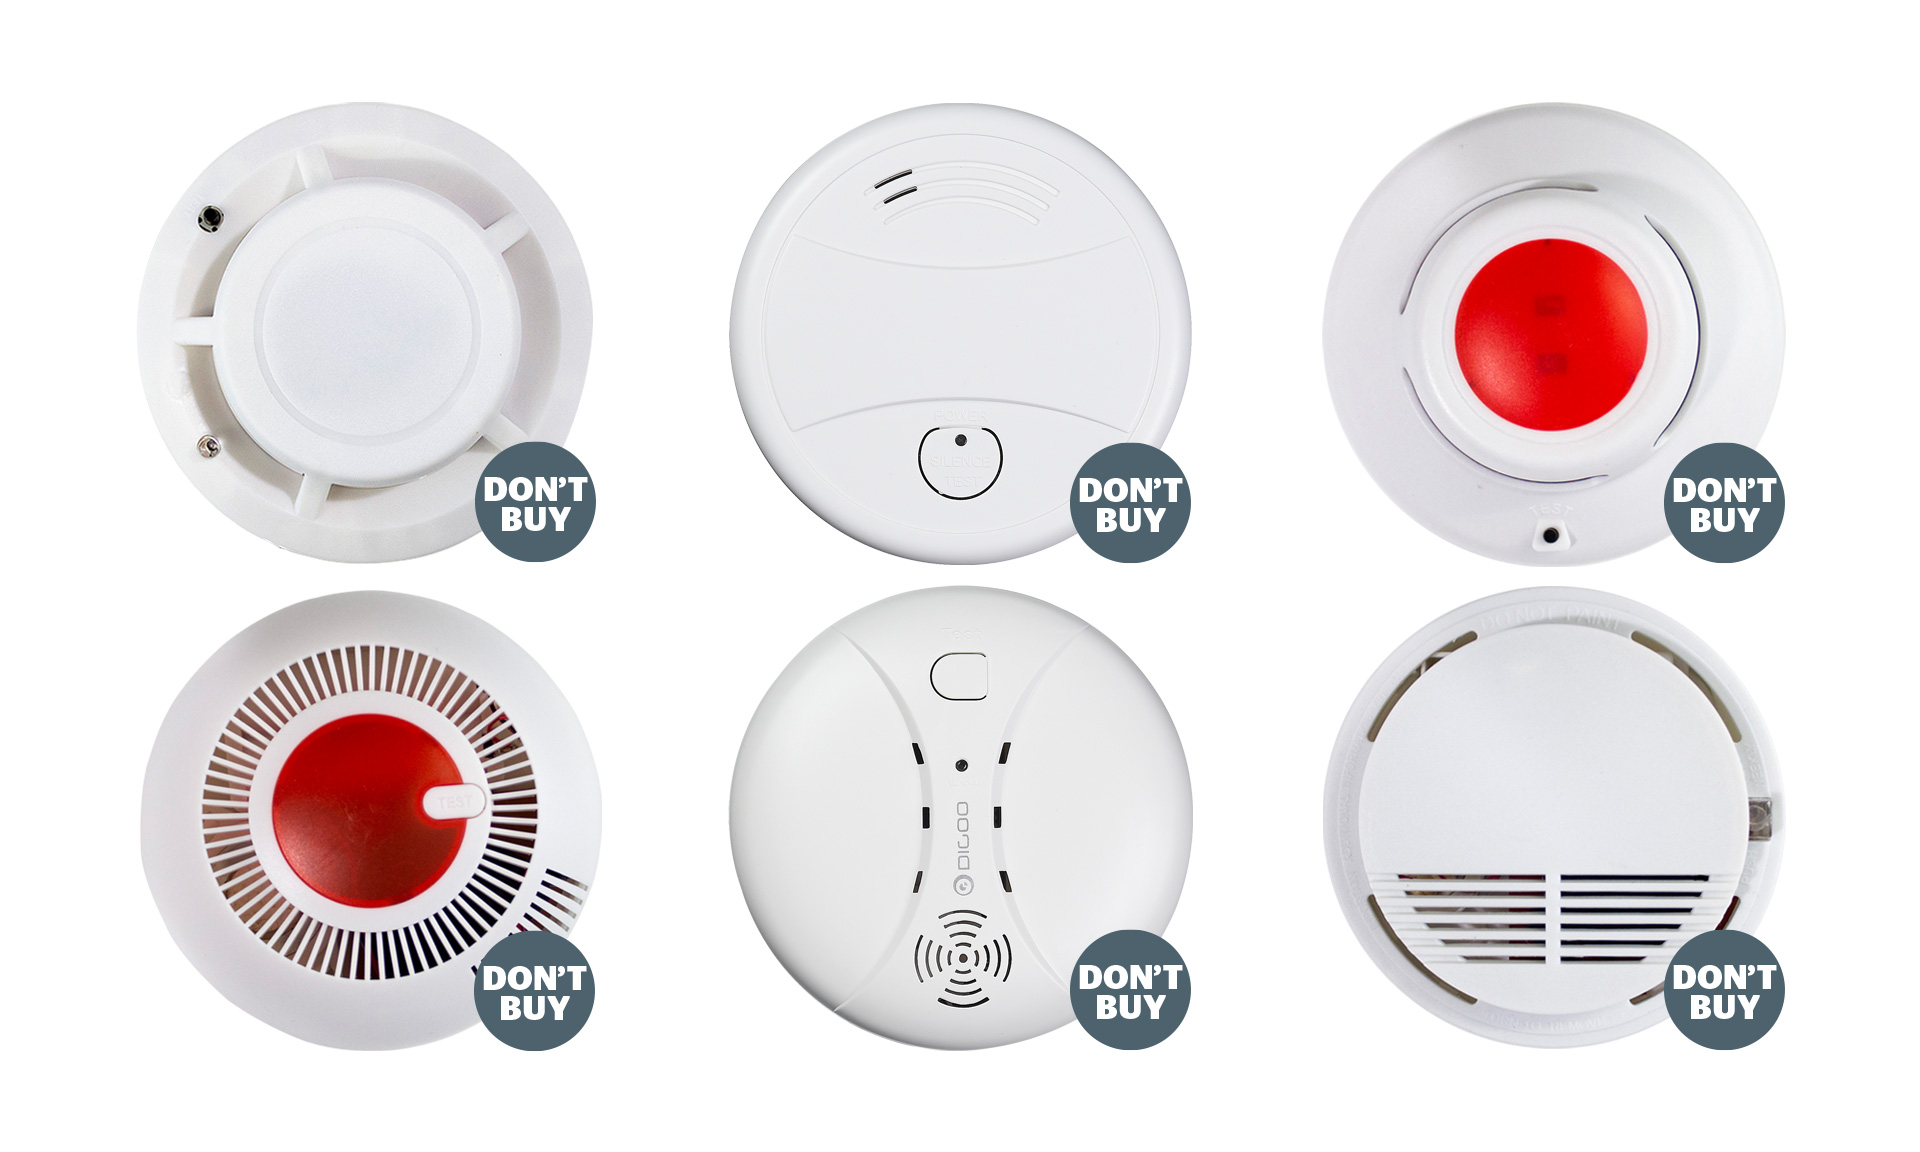 Six cheap and unbranded smoke alarms bought from online market places that are so bad at detecting smoke we made them Don't Buys